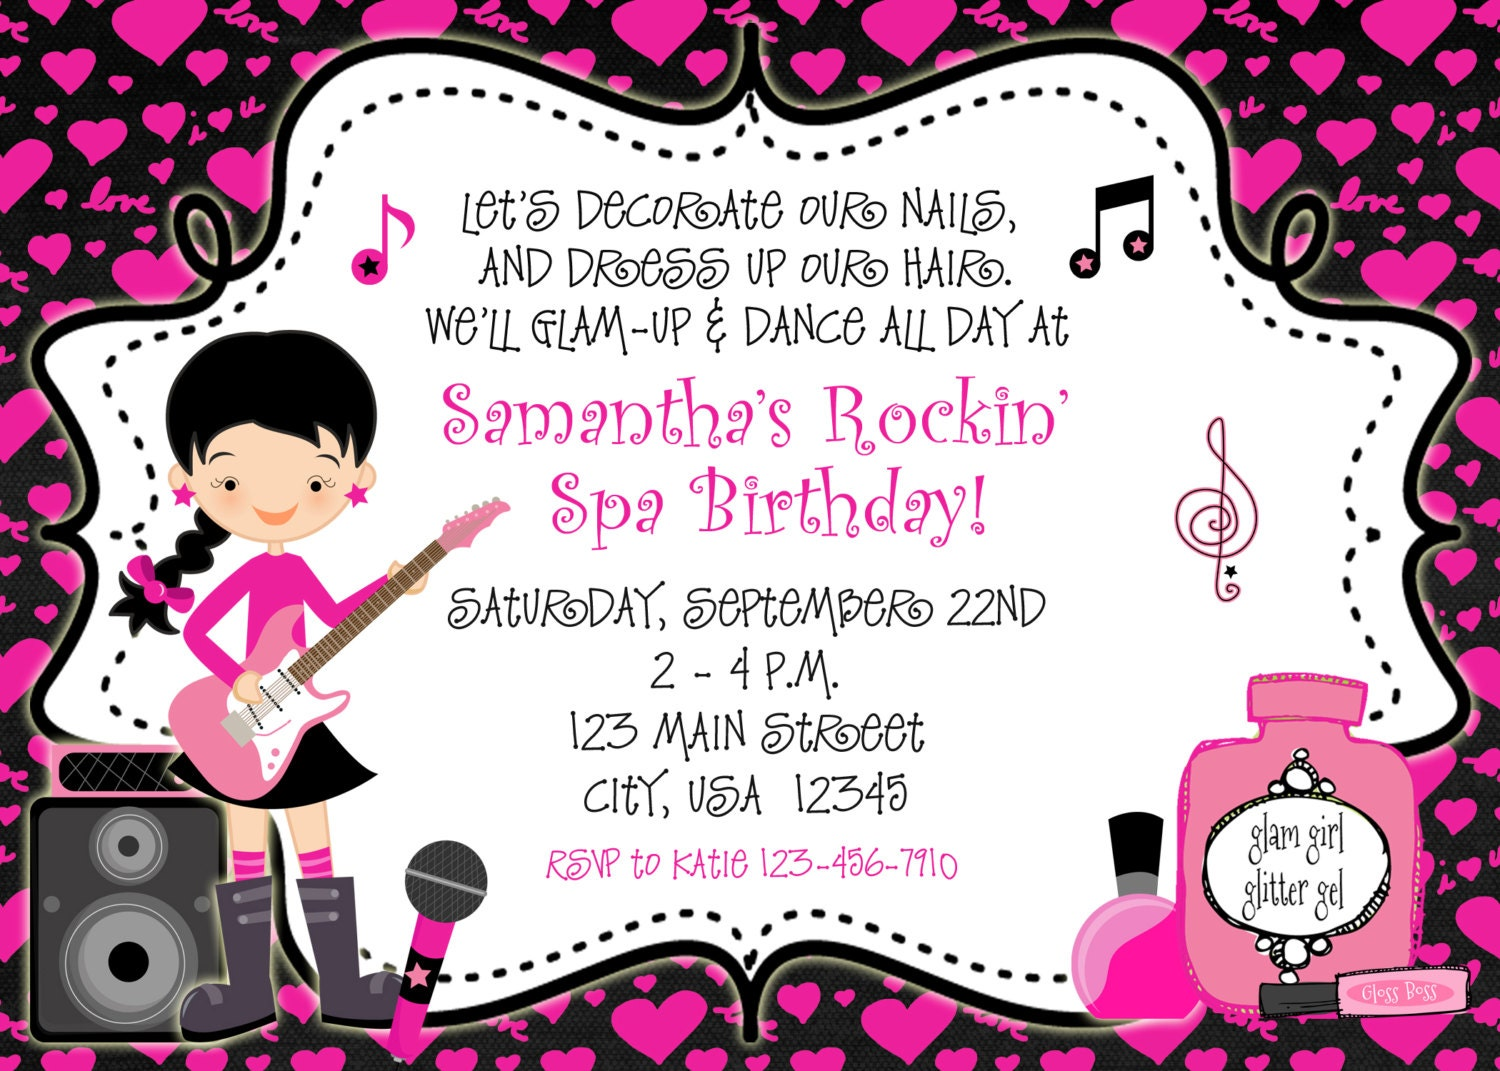 Rockin Spa Birthday Party Invitation glamour dance party – Dance Party Invites